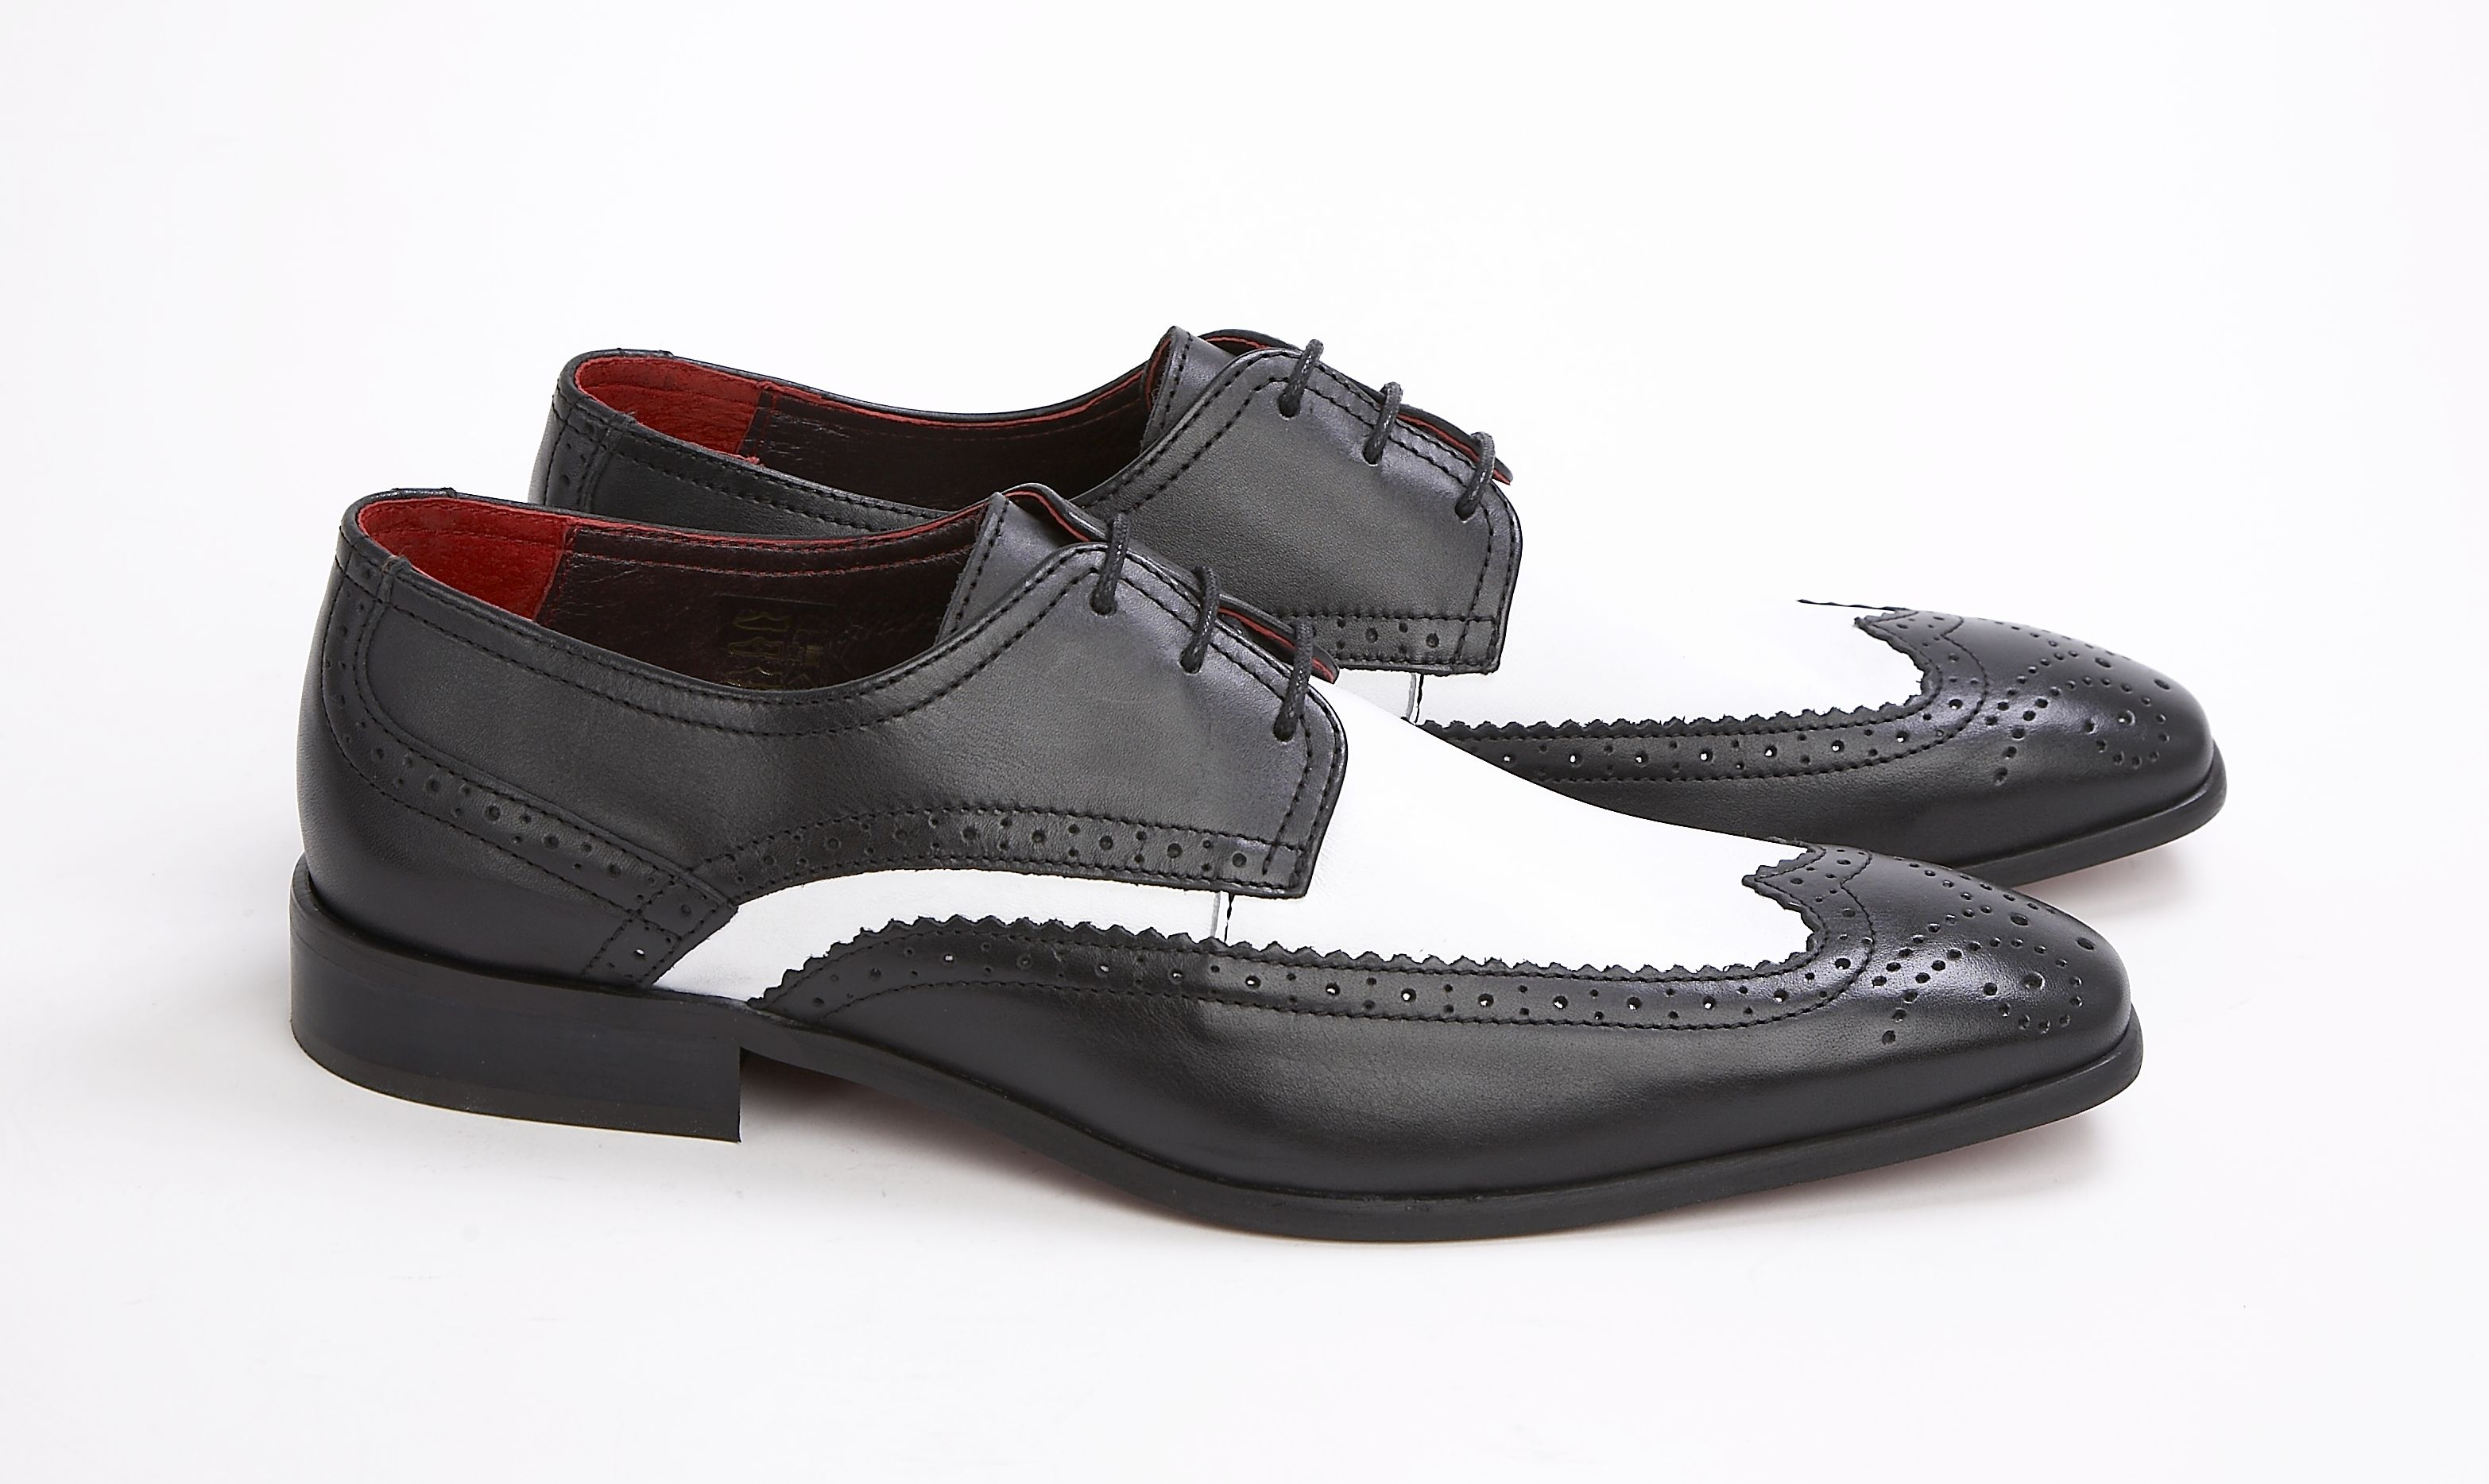 The Dekker £75.00    Classic 3 eyelet 2 tone brogue Construction: Leather upper - Leather linings and sock - Other materials sole  Colour: Black & White Smooth  Sizes available: 6-12